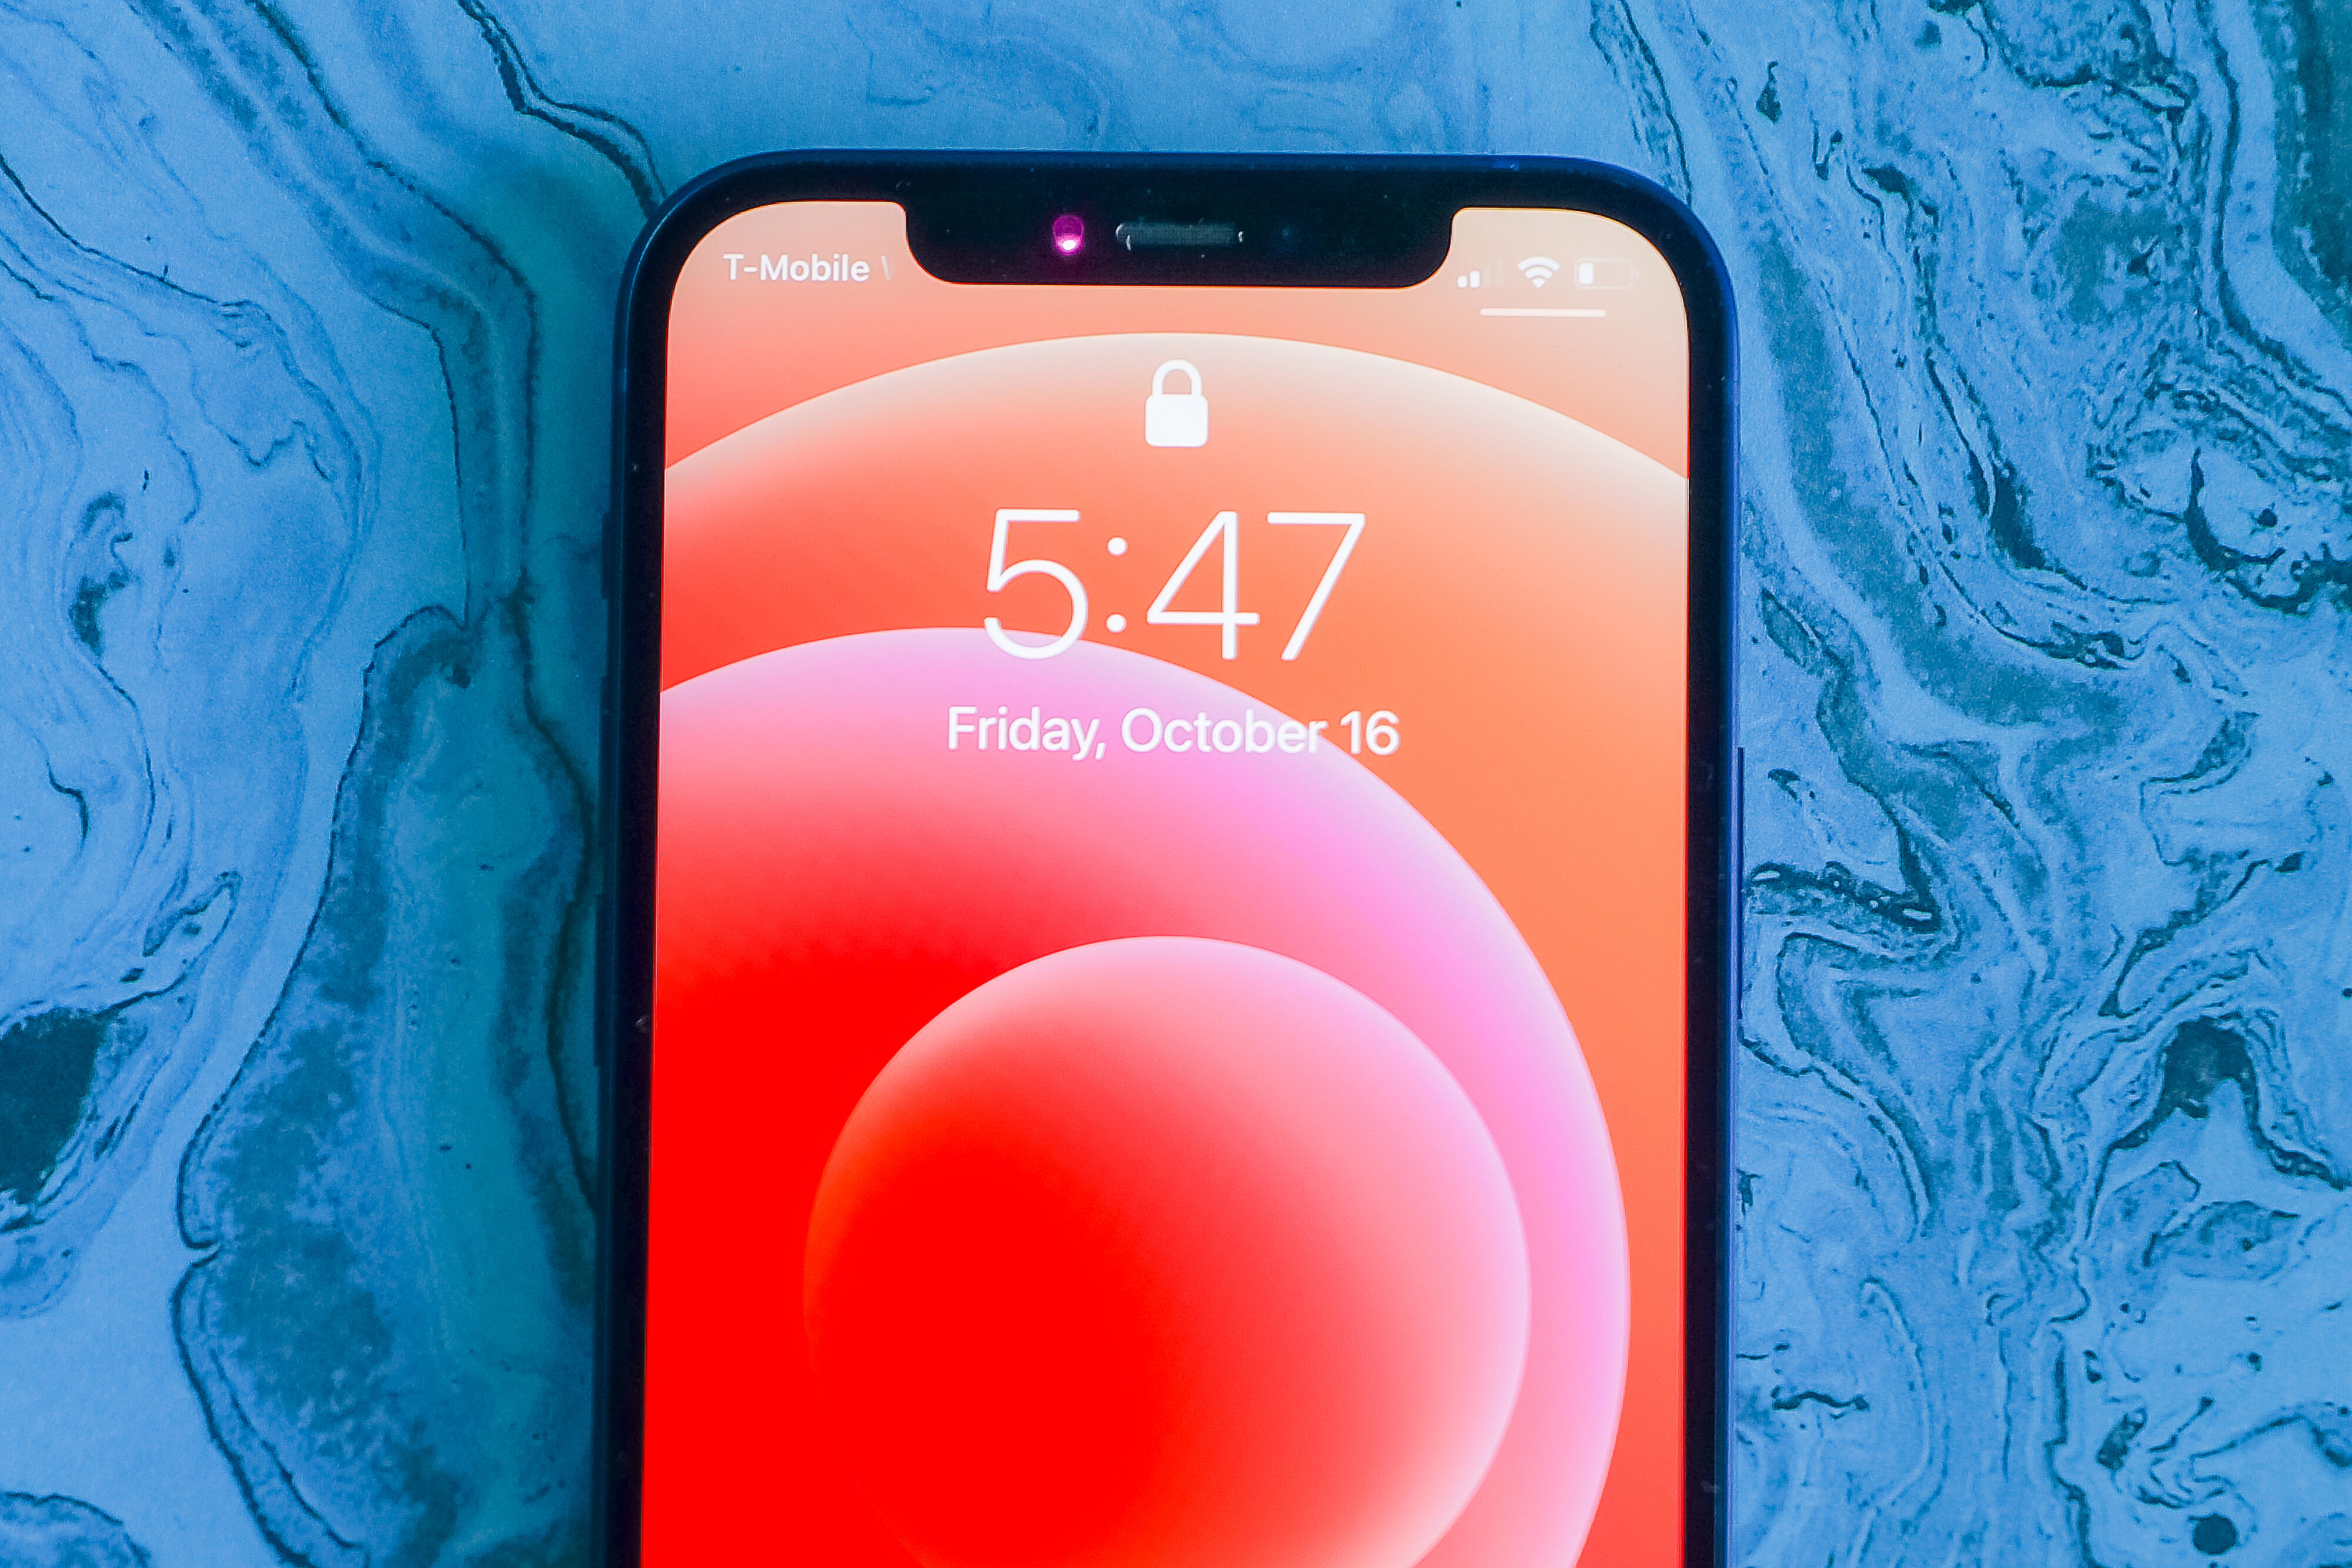 iOS 15: Release date, new features and every other rumor we've heard so far     - CNET